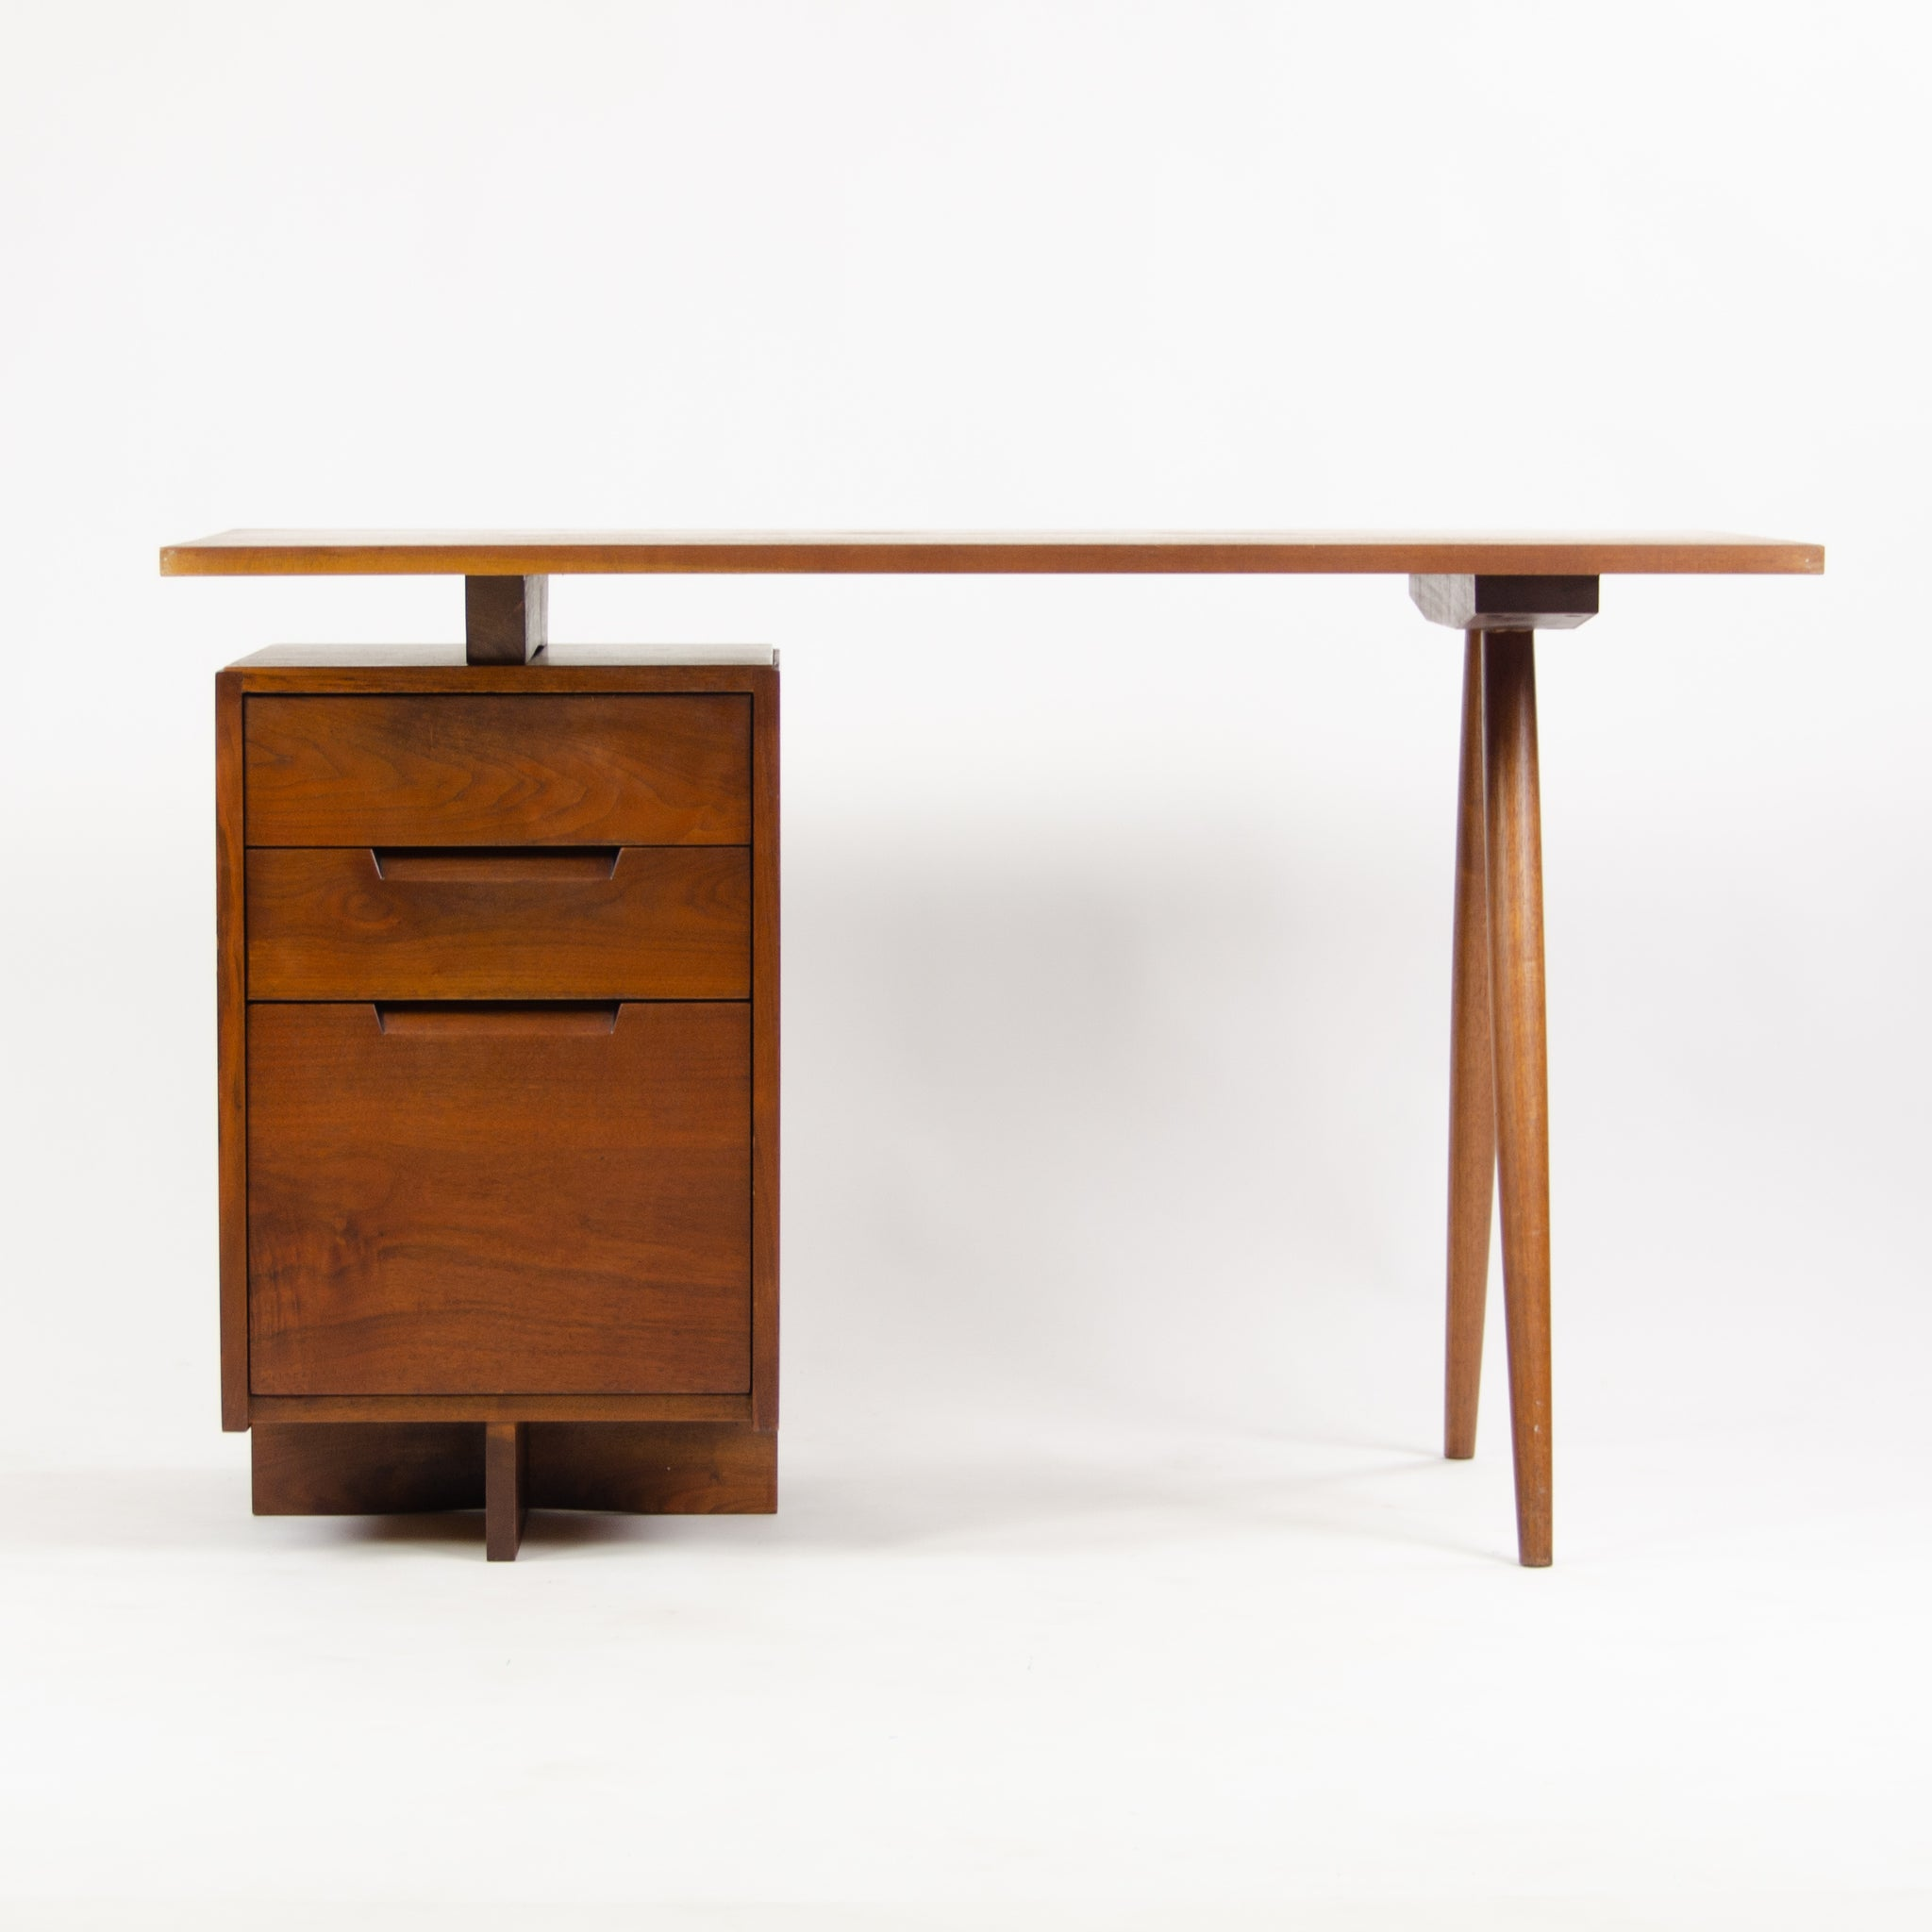 1956 George Nakashima Studio Single Pedestal Black Walnut Desk w/ Spindle Legs